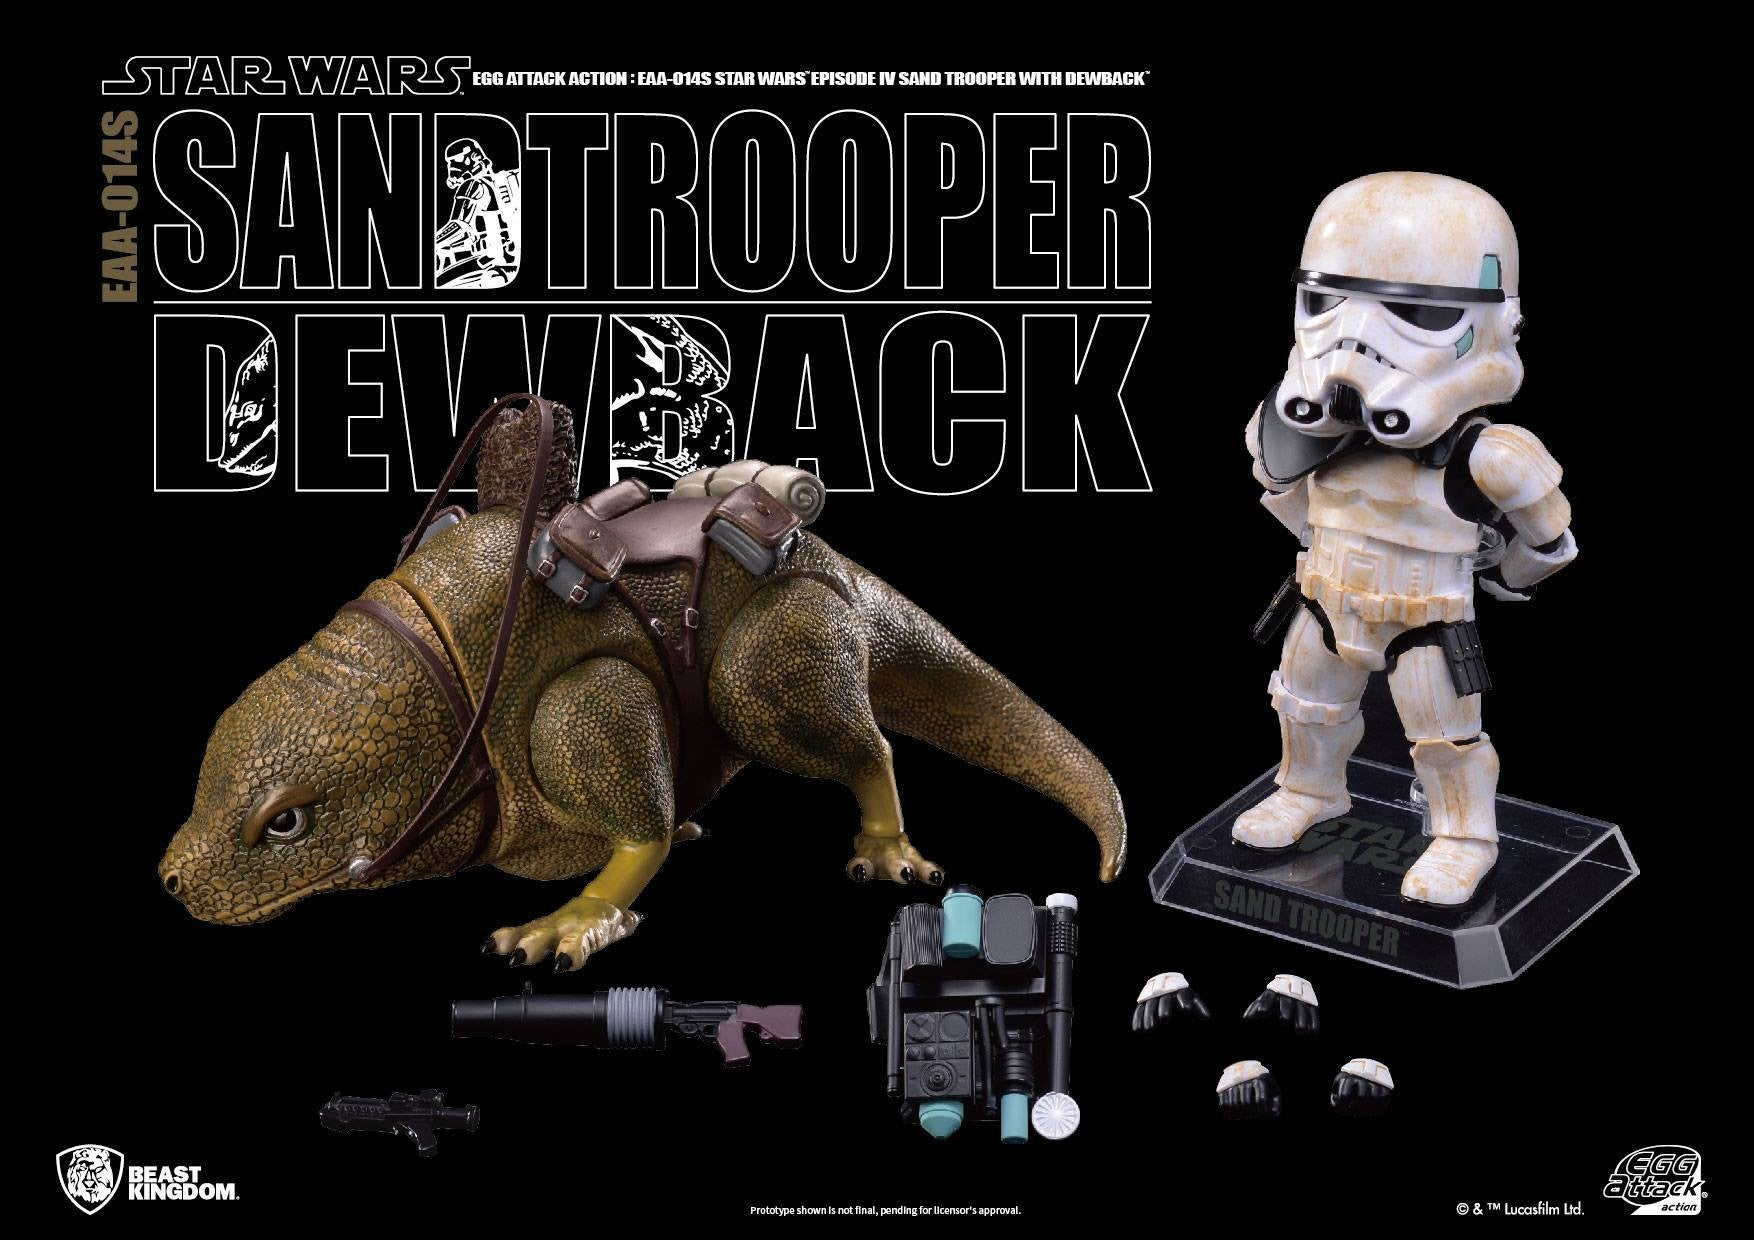 Egg Attack Action - EAA-014S - Star Wars: A New Hope - Dewback & Imperial Sandtrooper - Marvelous Toys - 4